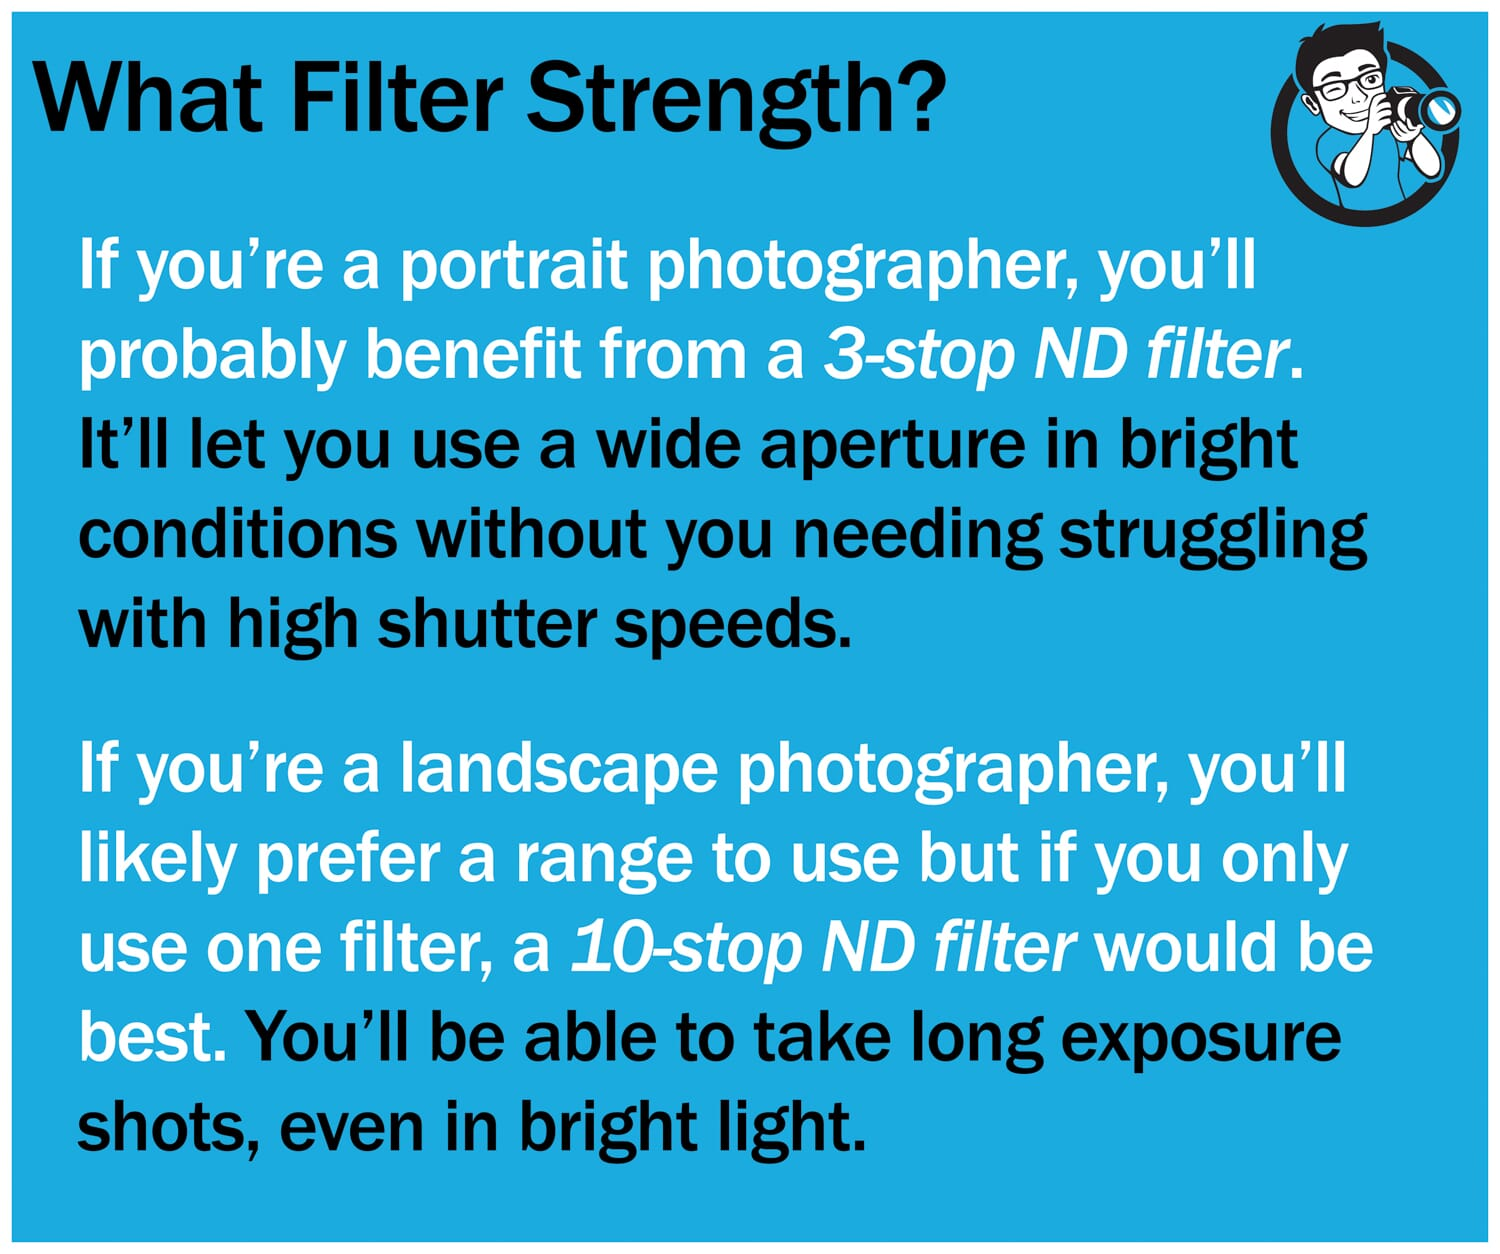 which filter strength should you choose